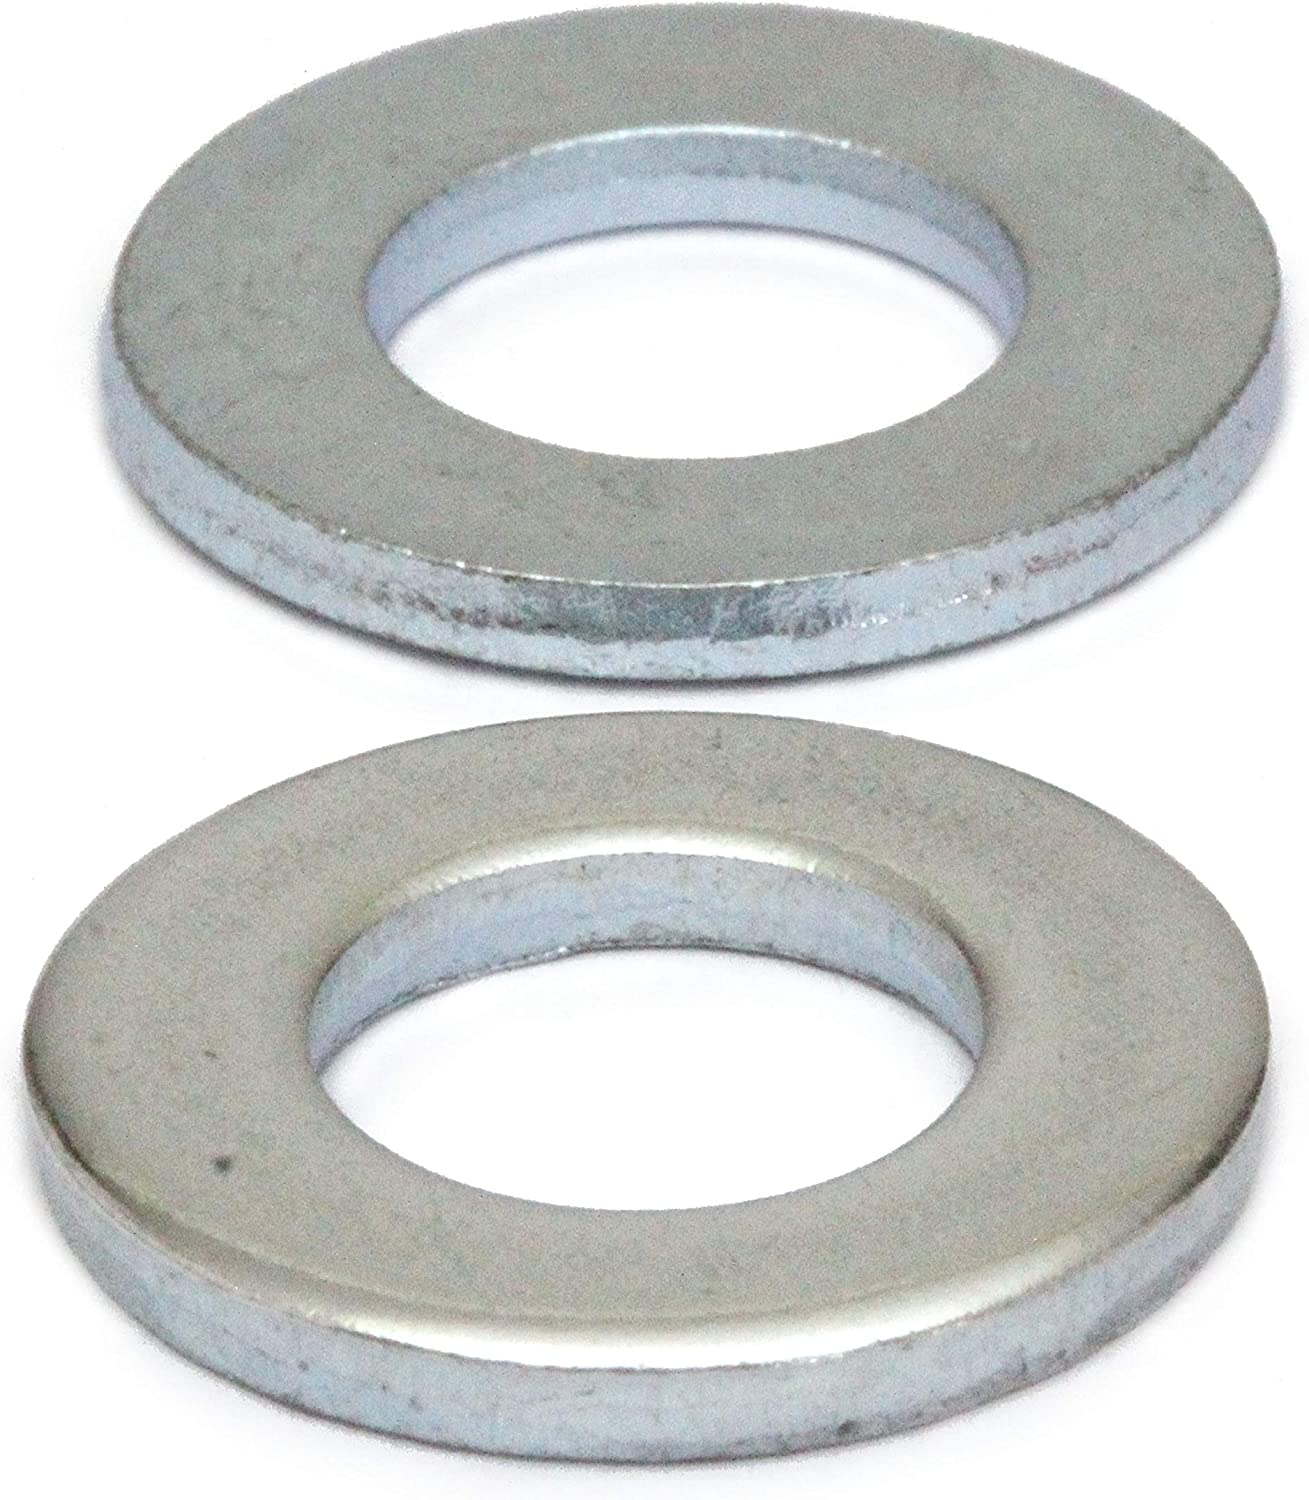 20mm METRIC WASHERS STANDARD FORM A THICK BRIGHT ZINC PLATED BZP DIN 125A M20